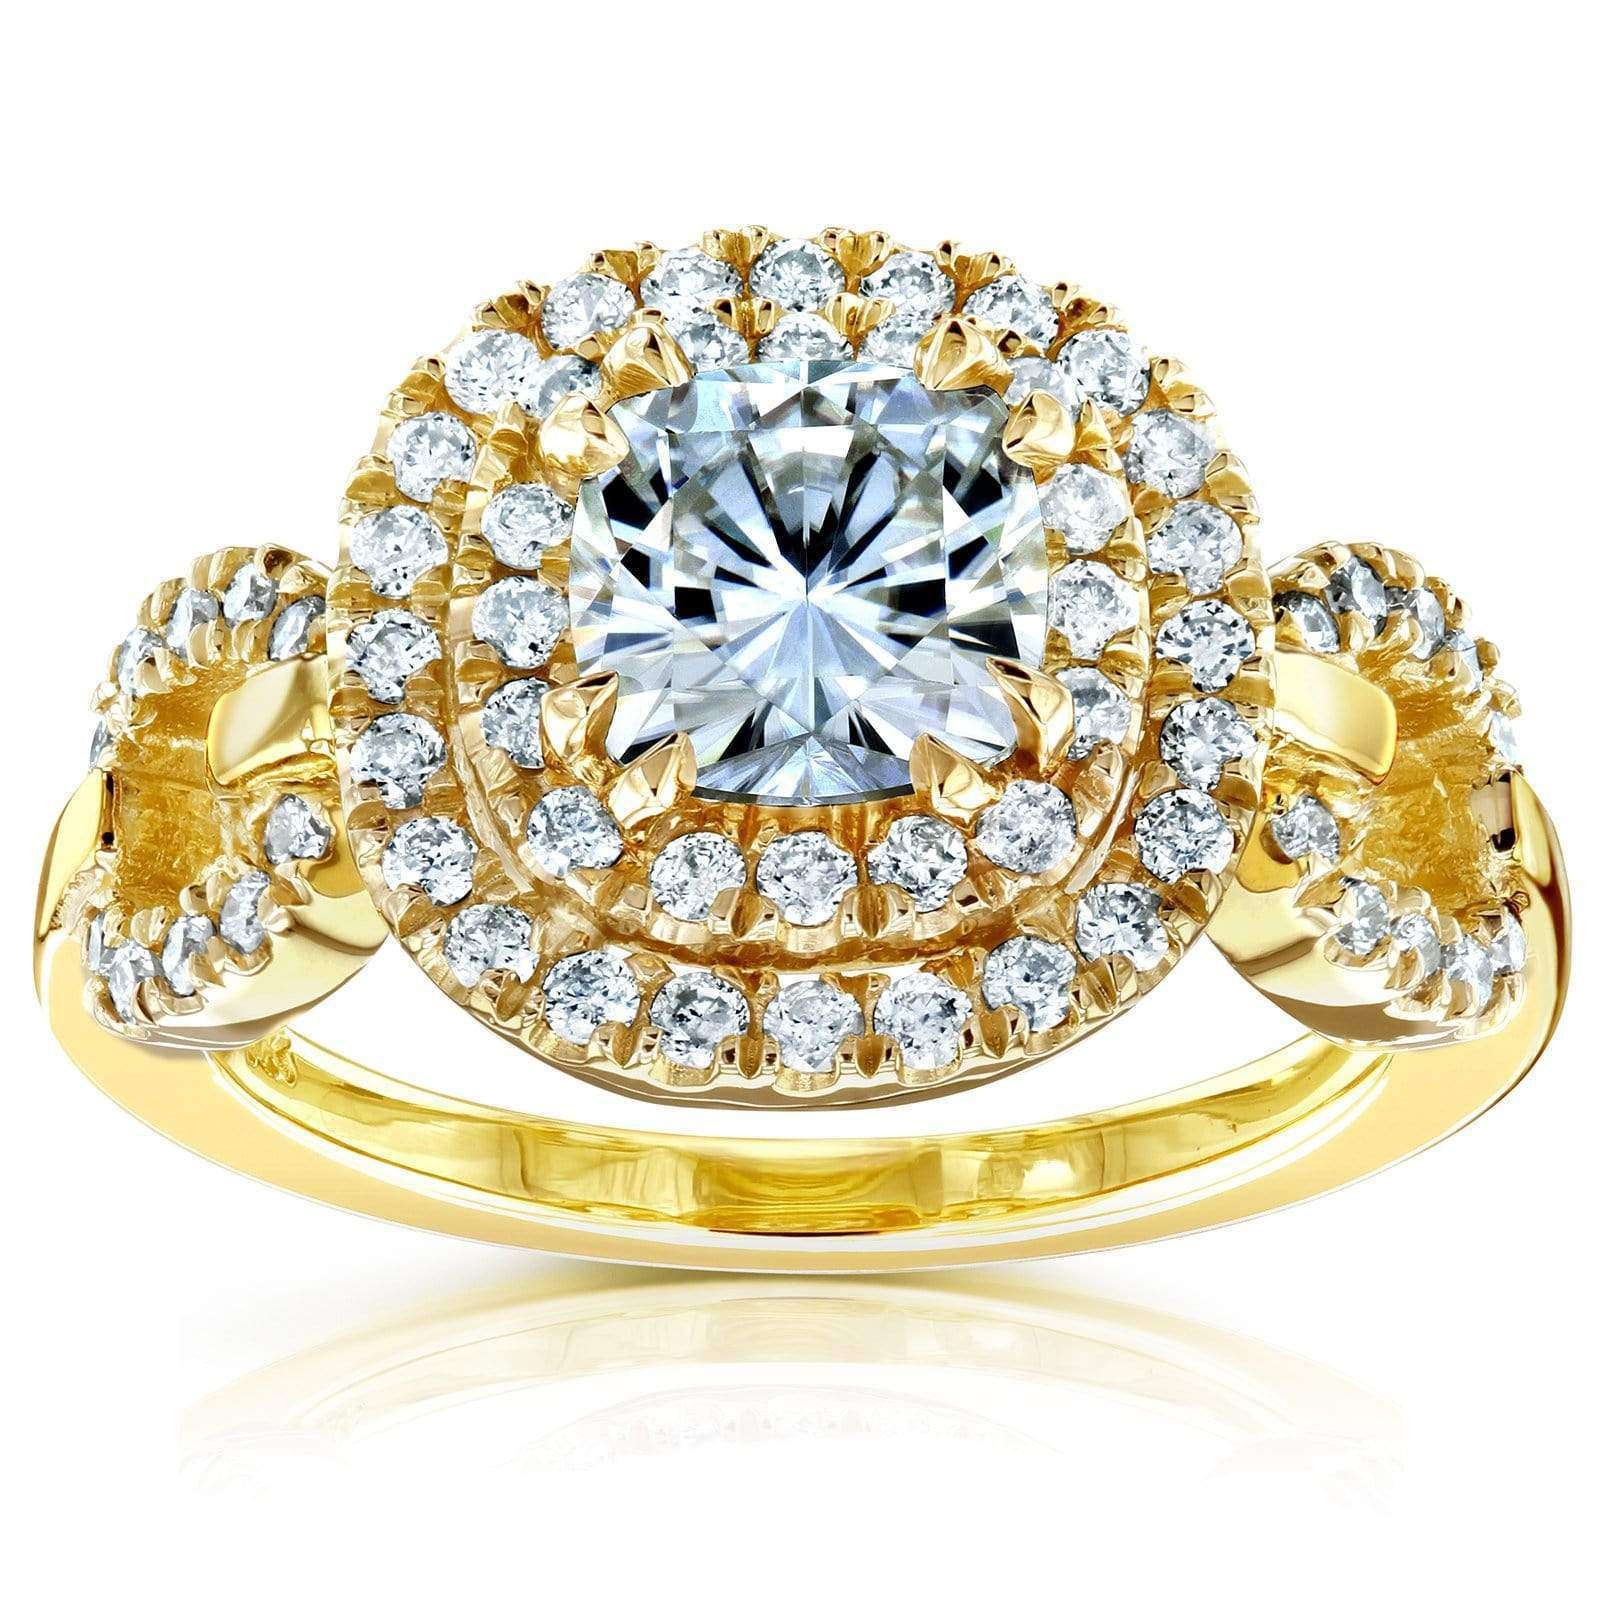 Promos Cushion-cut Moissanite Engagement Ring with Halo Diamond 1 3/5 CTW 14k Yellow Gold - 7.5